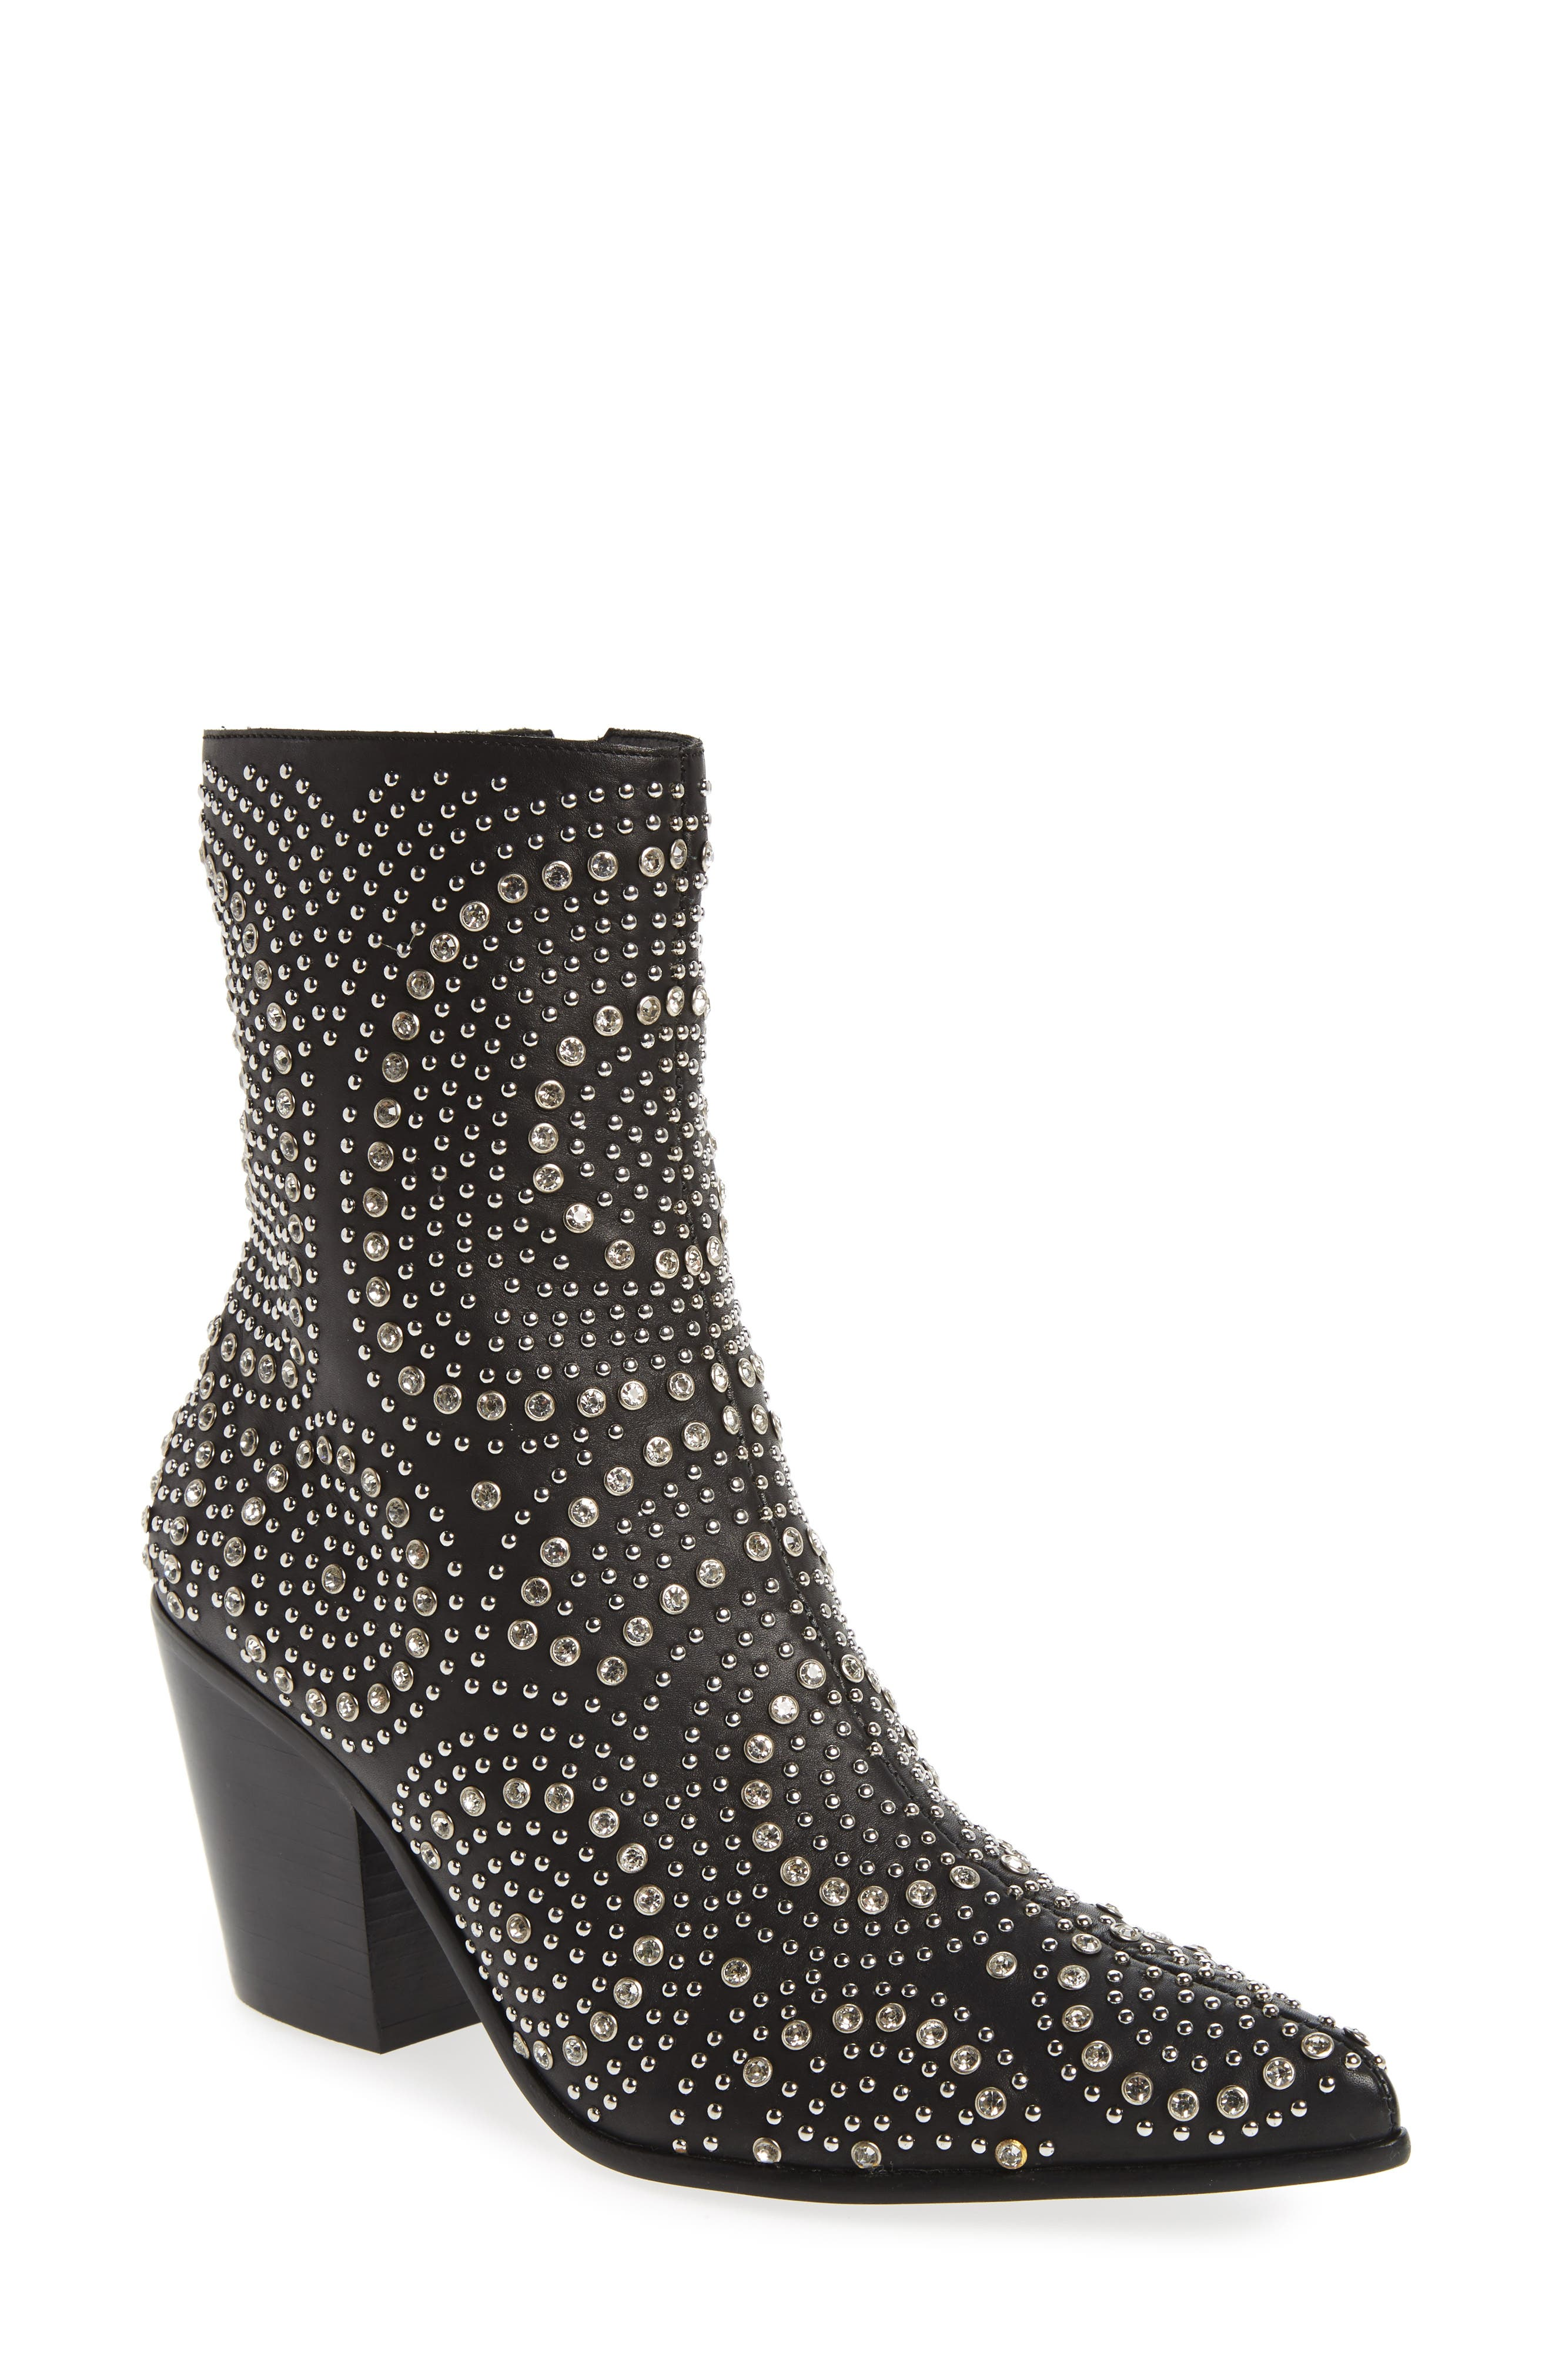 Main Image - Jeffrey Campbell ACE-SJ Embellished Bootie (Women)